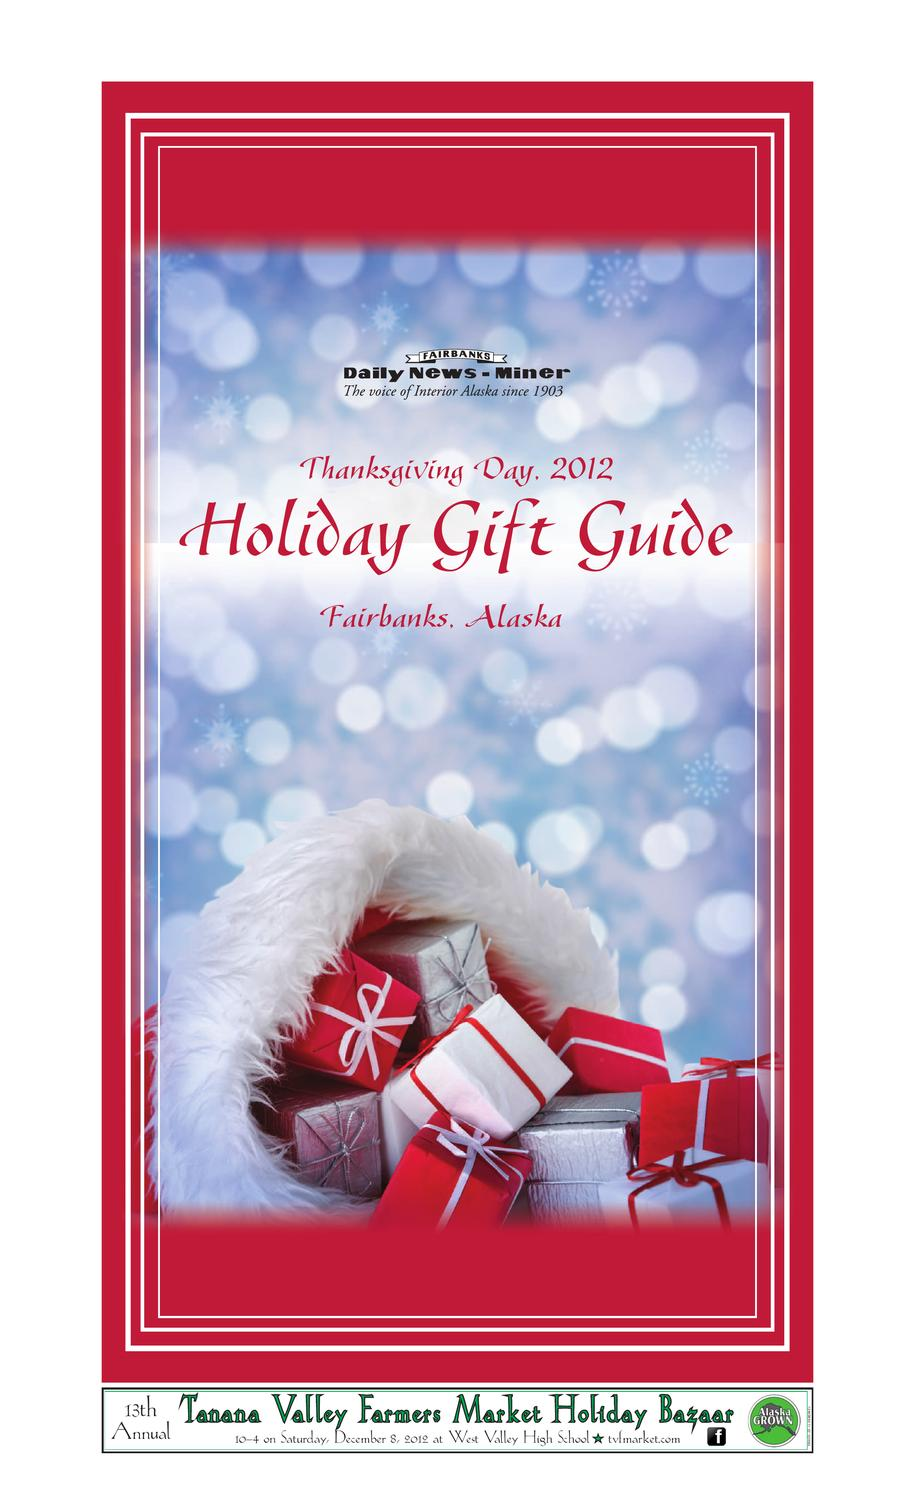 Holiday Gift Guide By Fairbanks Daily News Miner Issuu How To Draw A Family Tree Diagram Ehow Uk